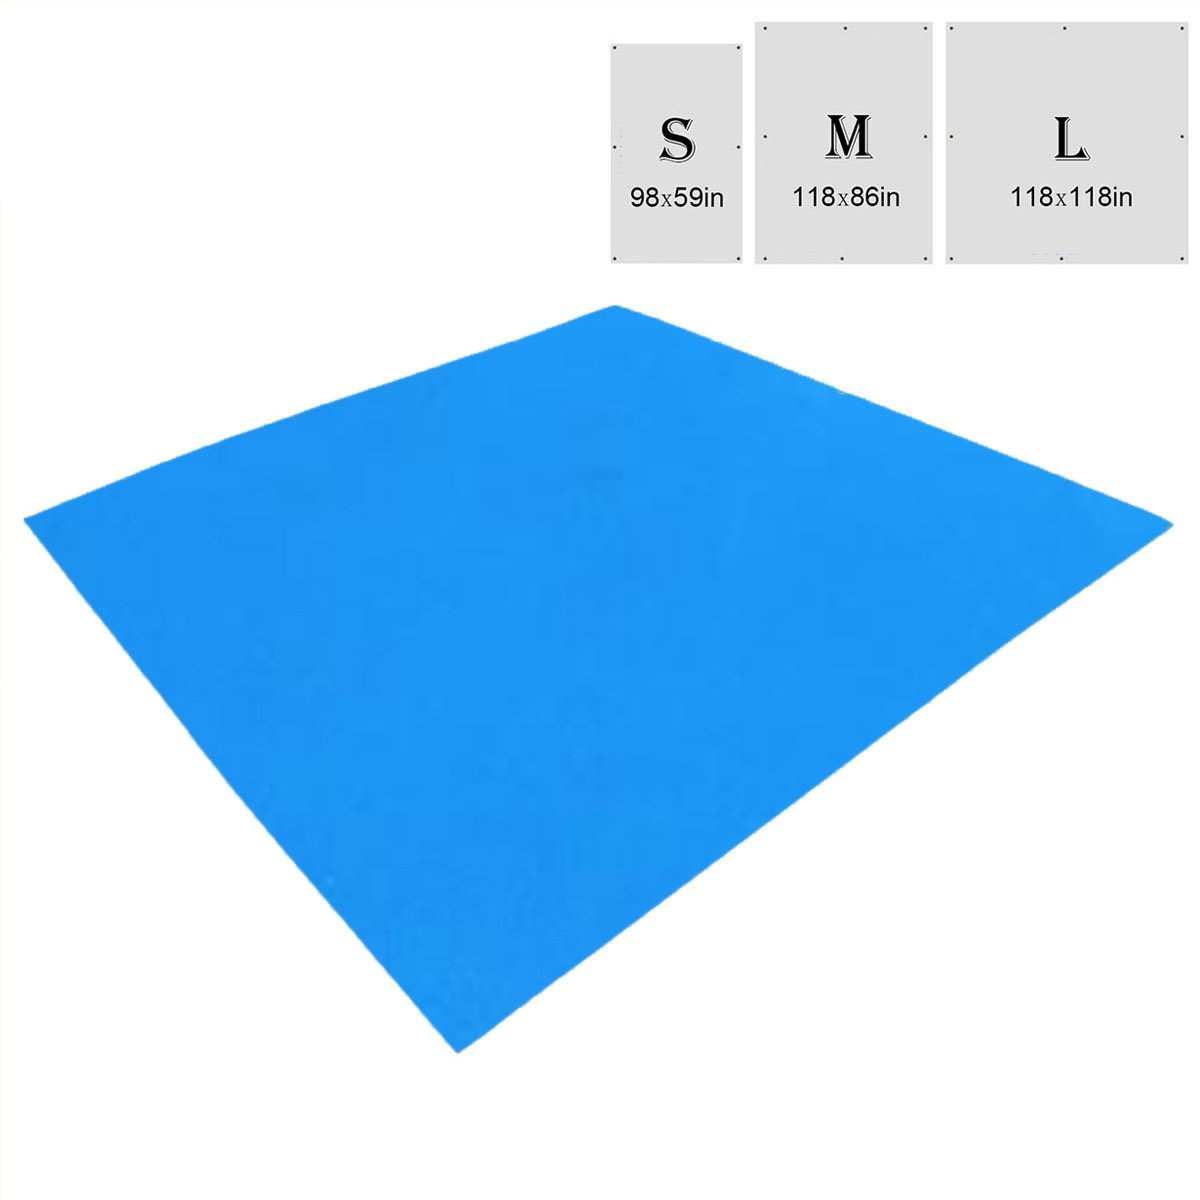 TRIWONDER Waterproof Hammock Rain Fly Tent Tarp Footprint Camping Shelter Ground Cloth Sunshade Mat for Outdoor Hiking Beach Picnic (Blue, S - 98 x 59in) by TRIWONDER